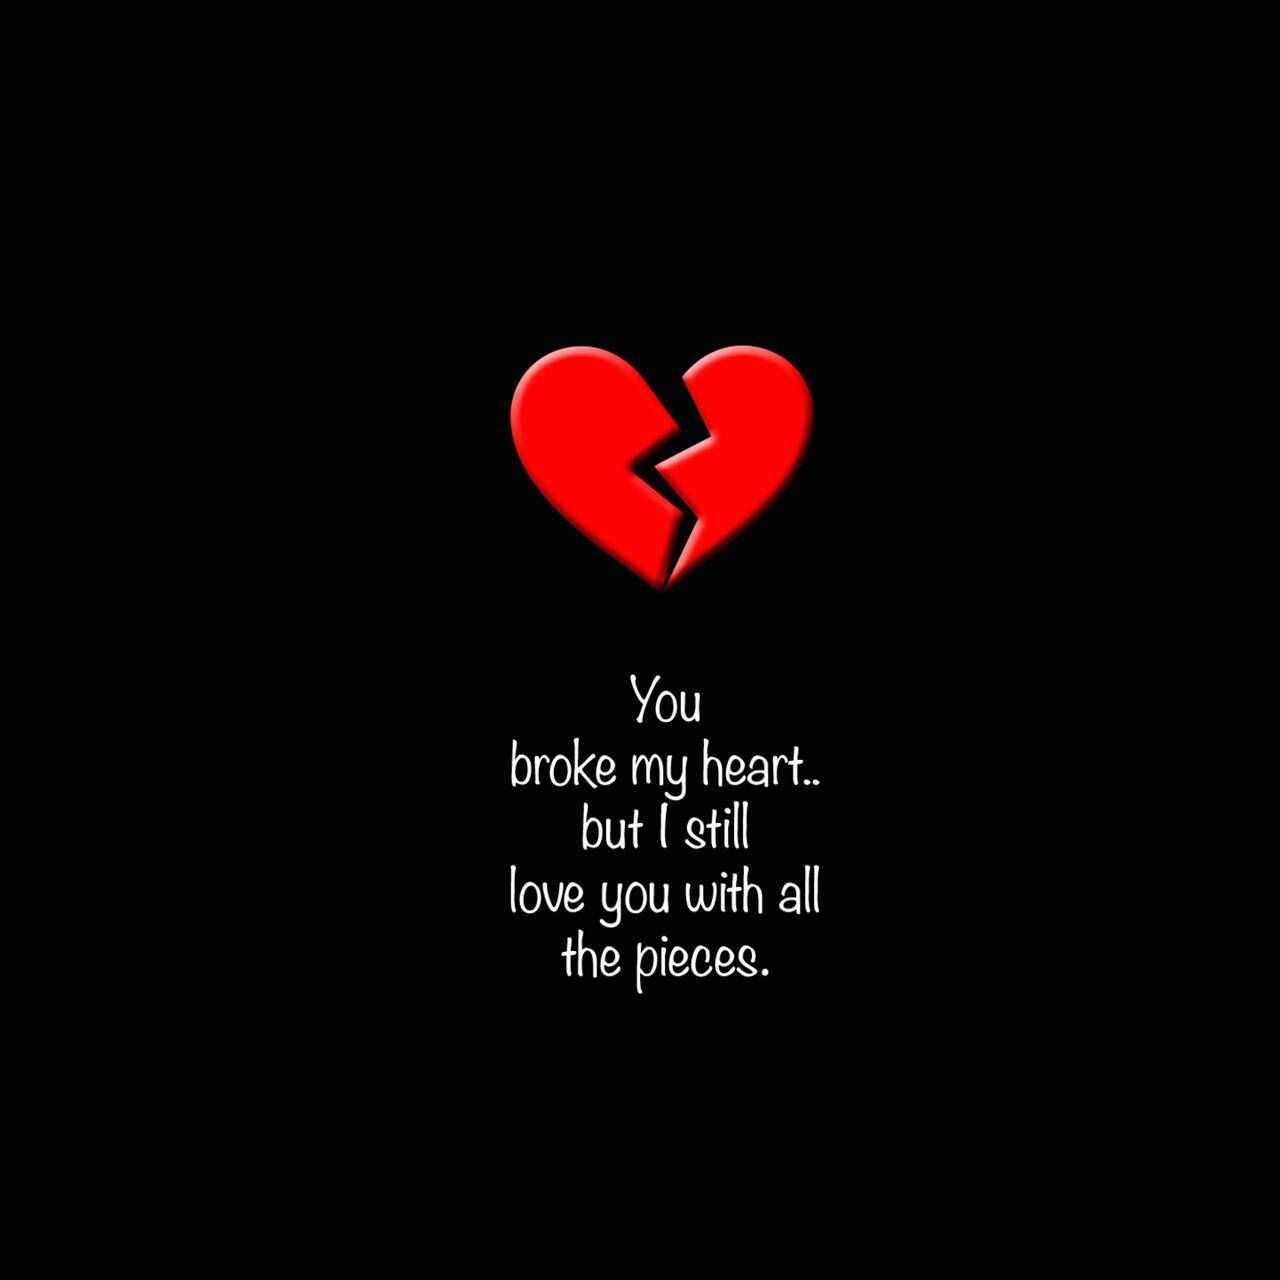 Broken Heart Broken heart wallpaper, Heart wallpaper